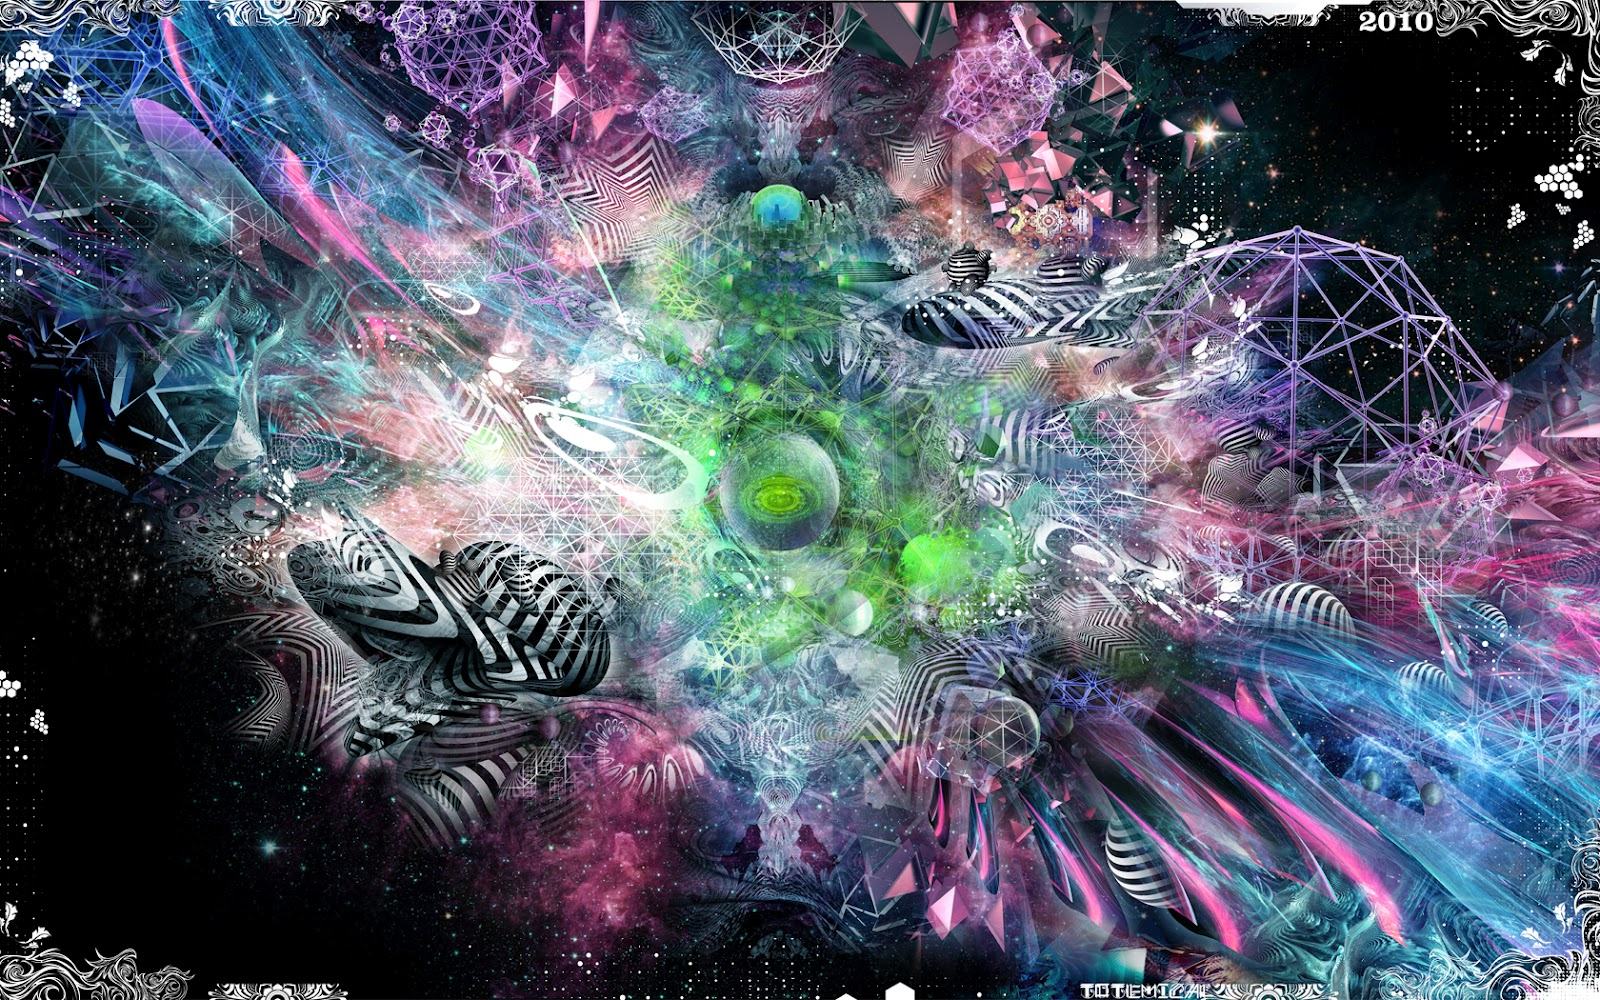 http://4.bp.blogspot.com/-dJ8R2knYPUA/T7Gz4UdAEfI/AAAAAAAACLM/msmeZain7Vo/s1600/amazing+3d+abstract+art+wallpaper.jpg